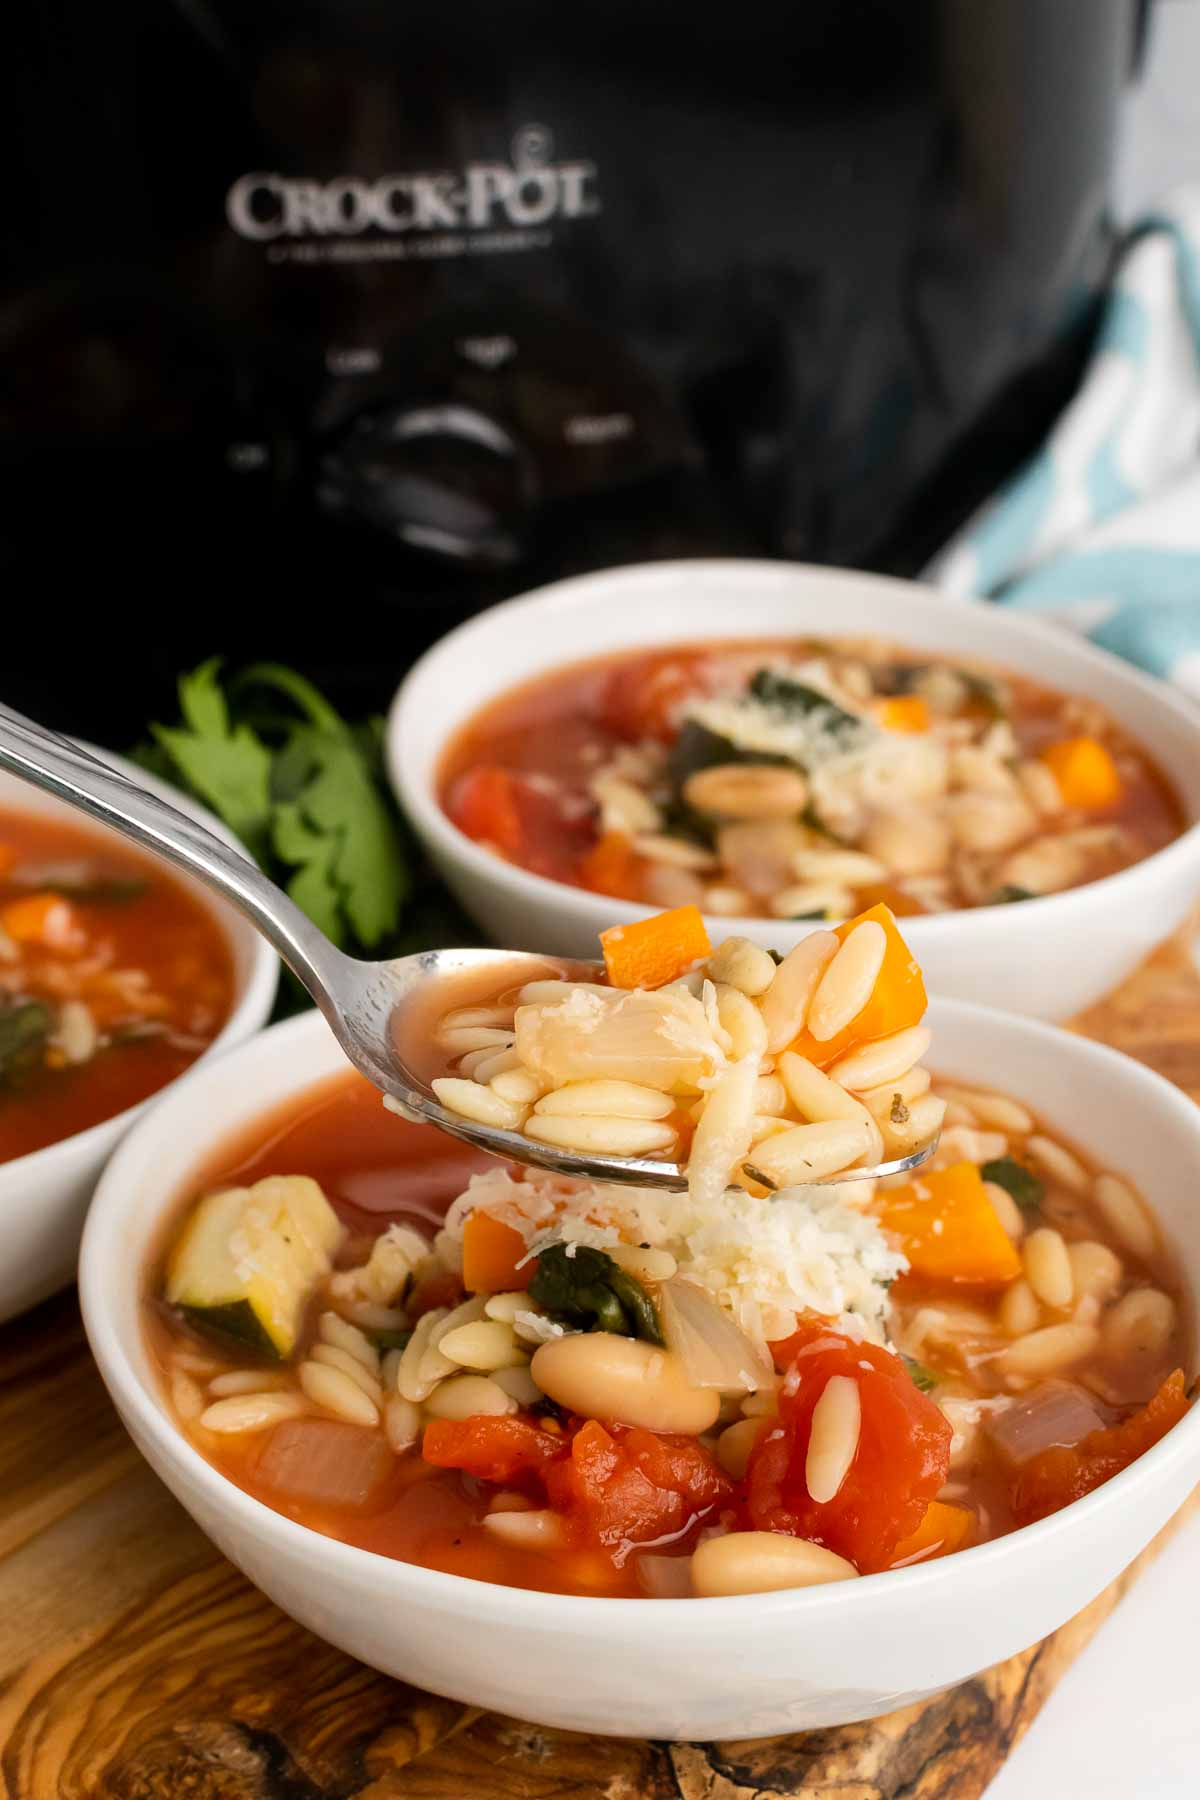 Spoon full of Slow Cooker Minestrone held over a bowl